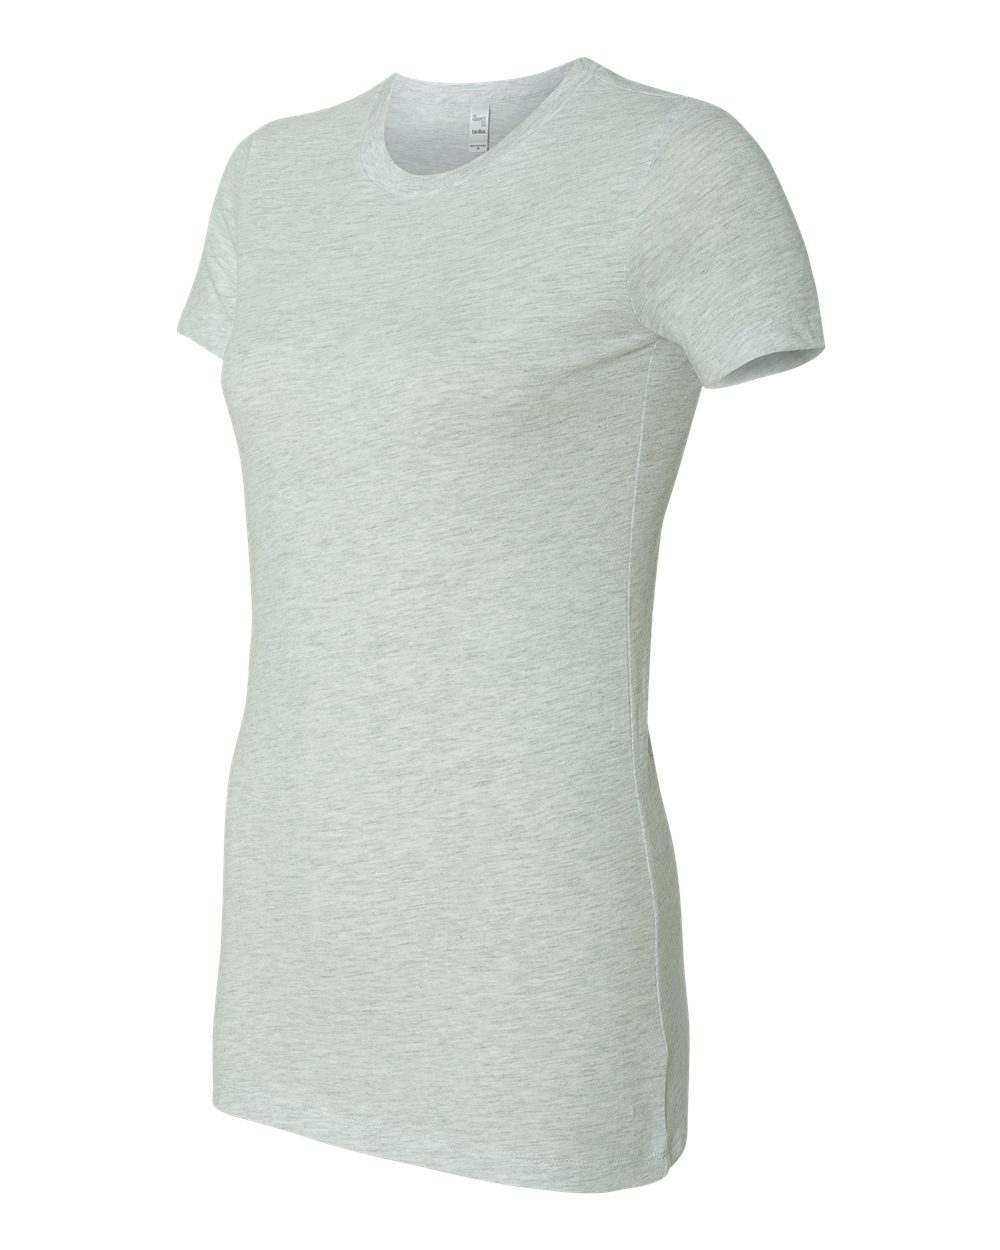 Bella-Canvas-Womens-The-Favorite-T-Shirt-6004-Size-S-2XL thumbnail 12